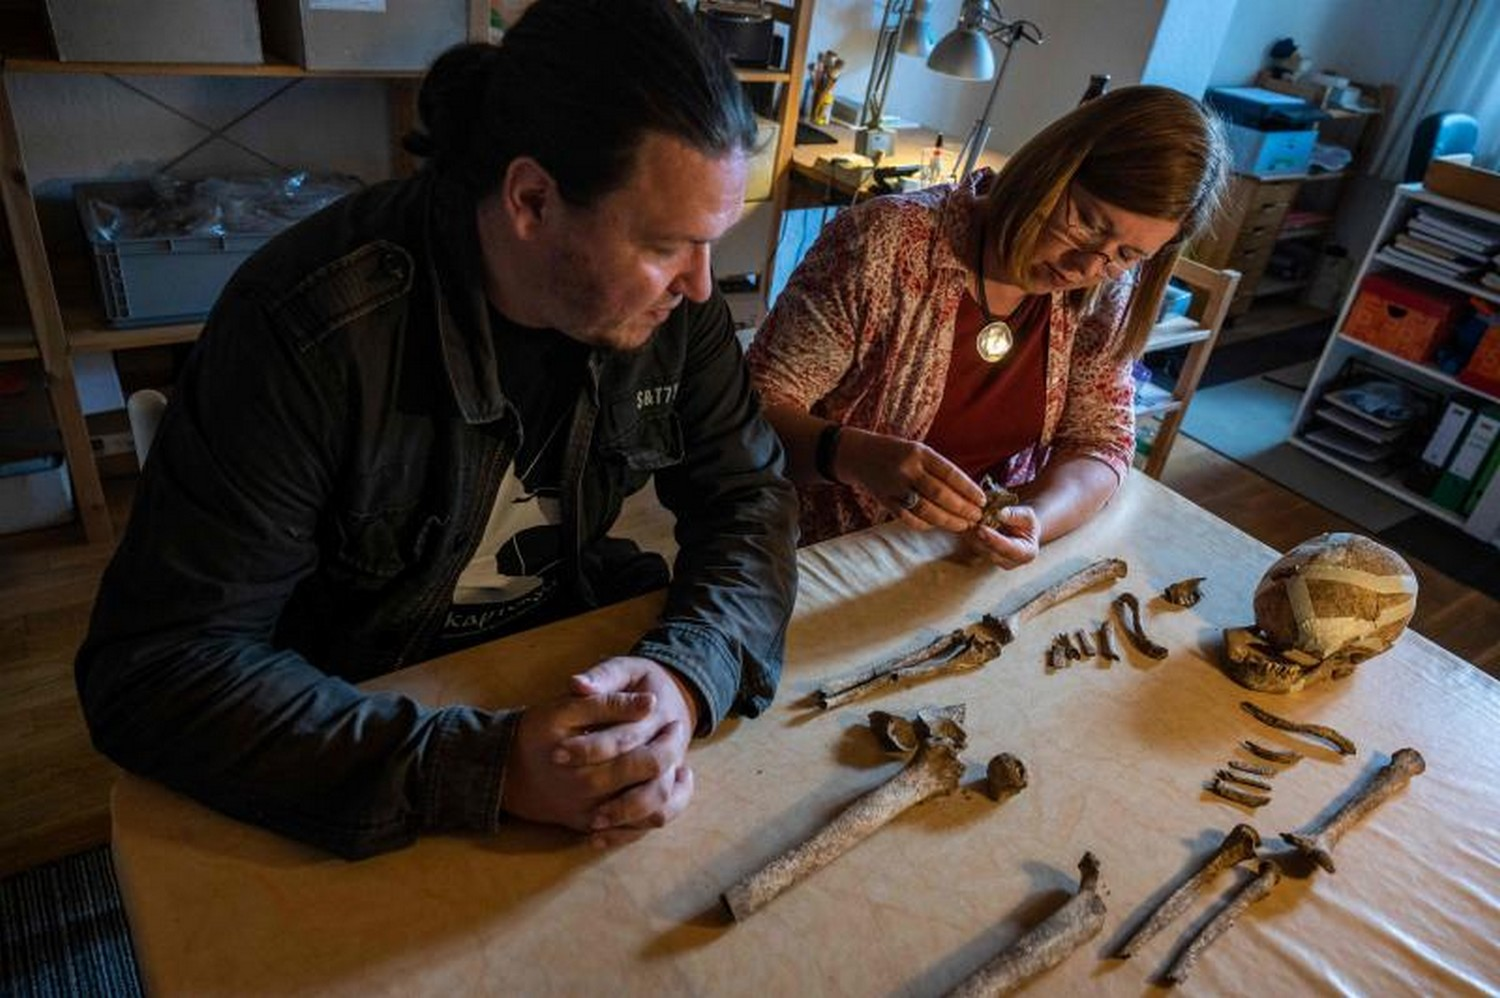 Ancient skeleton find in Germany offers clues on prehistoric era